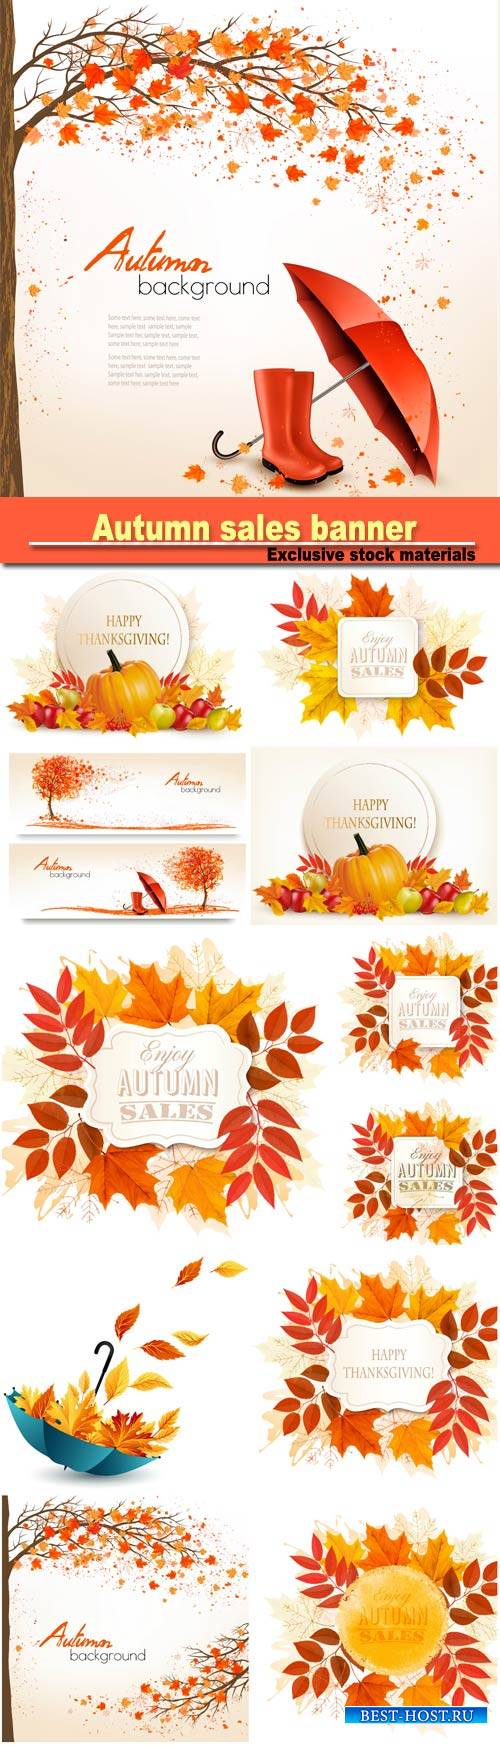 Autumn sales banner with colorful leaves, happy Thanksgiving background